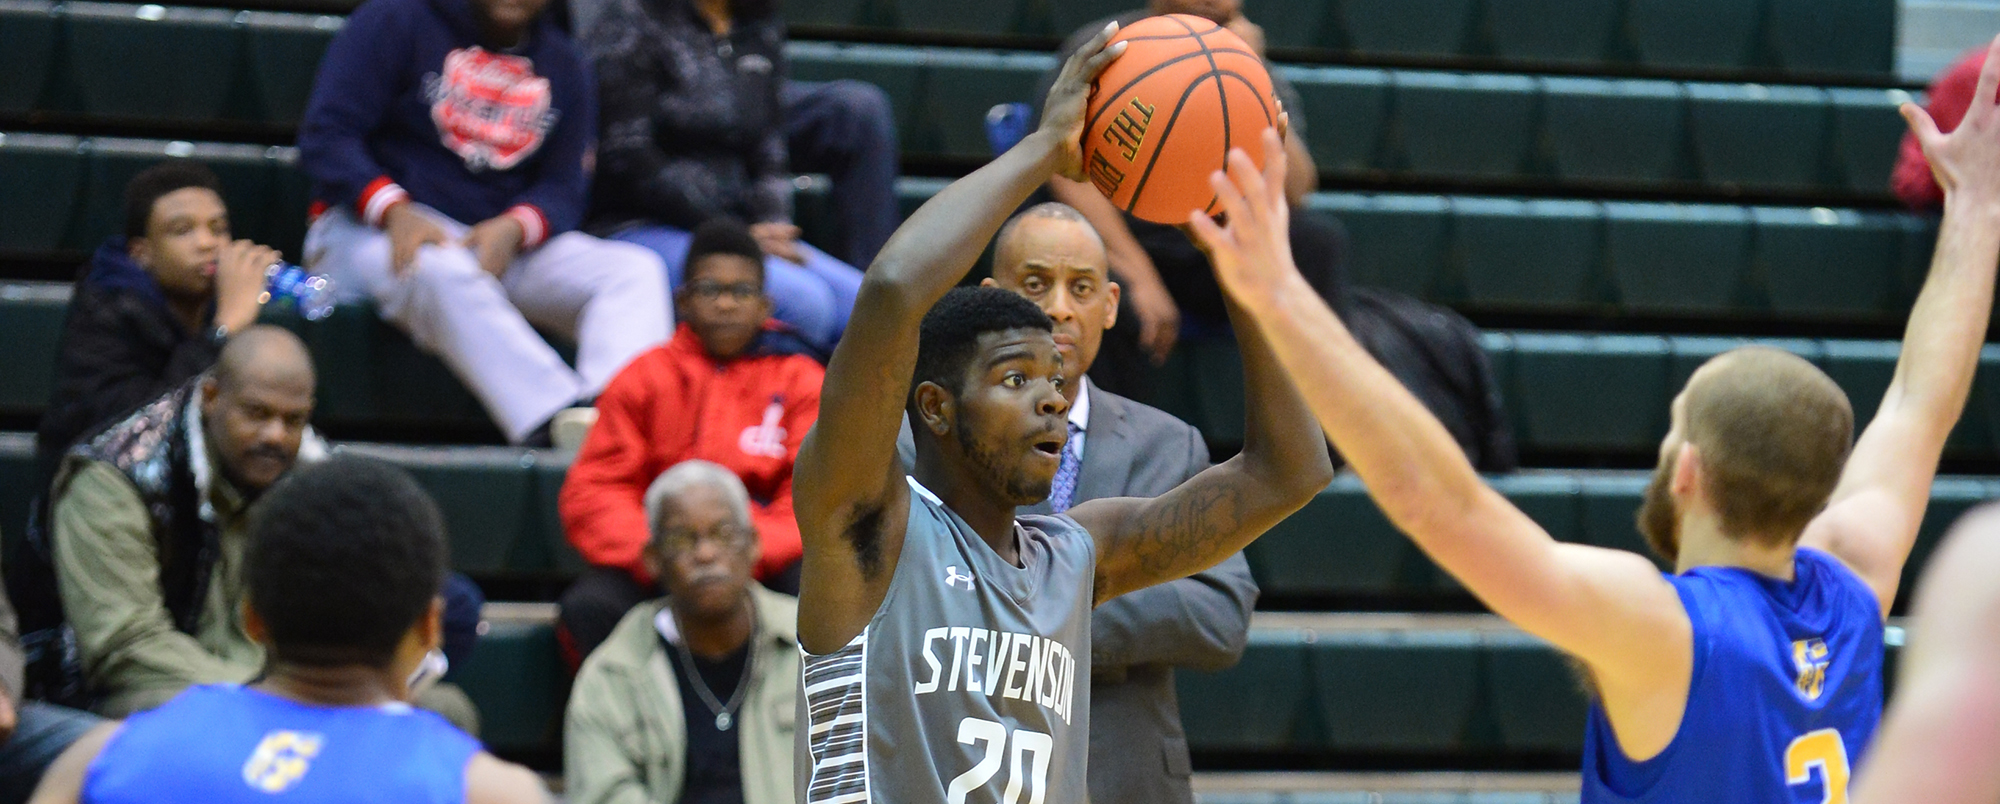 Men's Basketball Looks to Bounce Back Against Alvernia